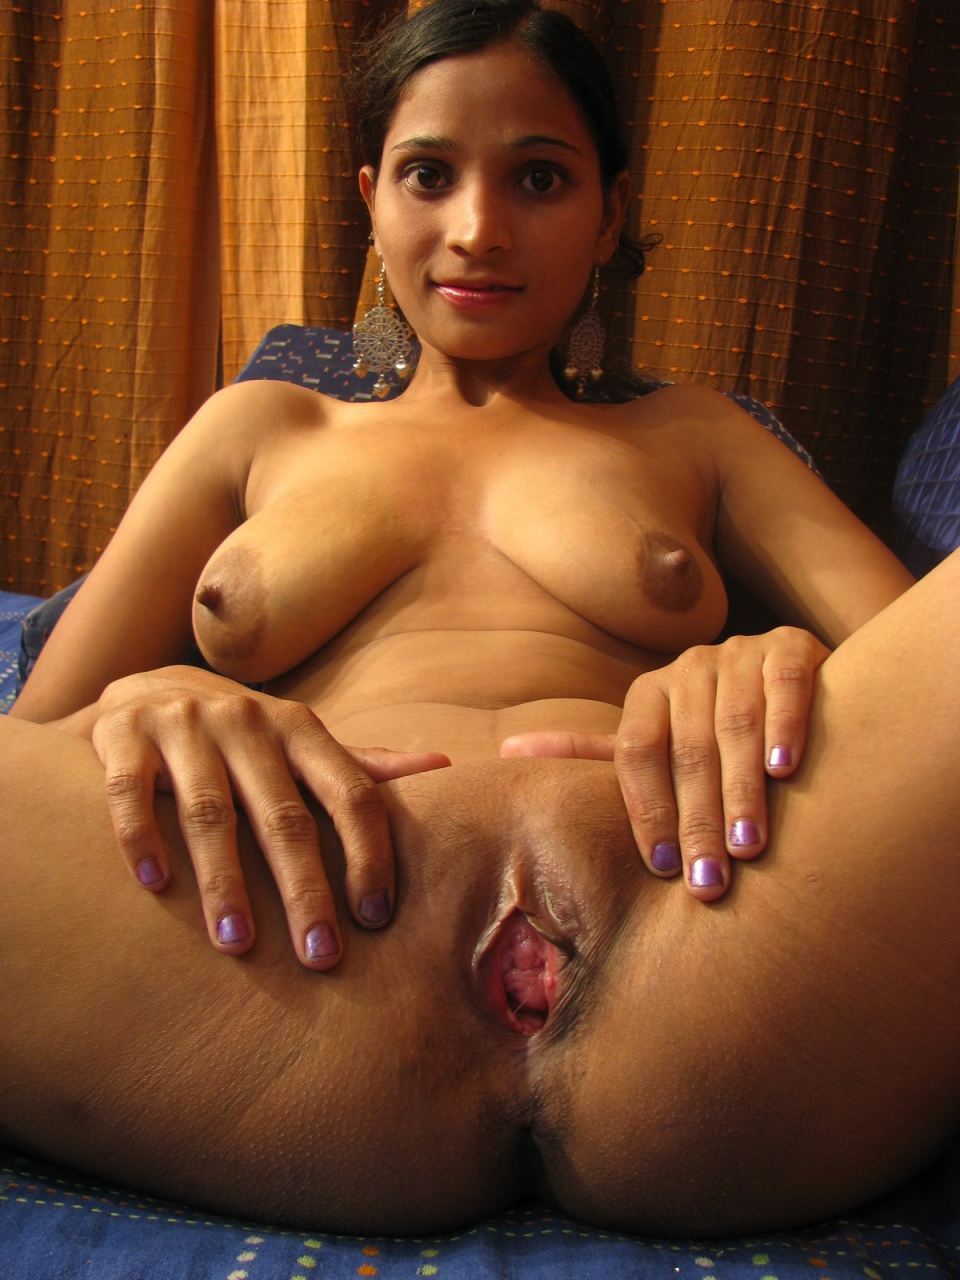 There something? Amateur naked indian girls sex excellent